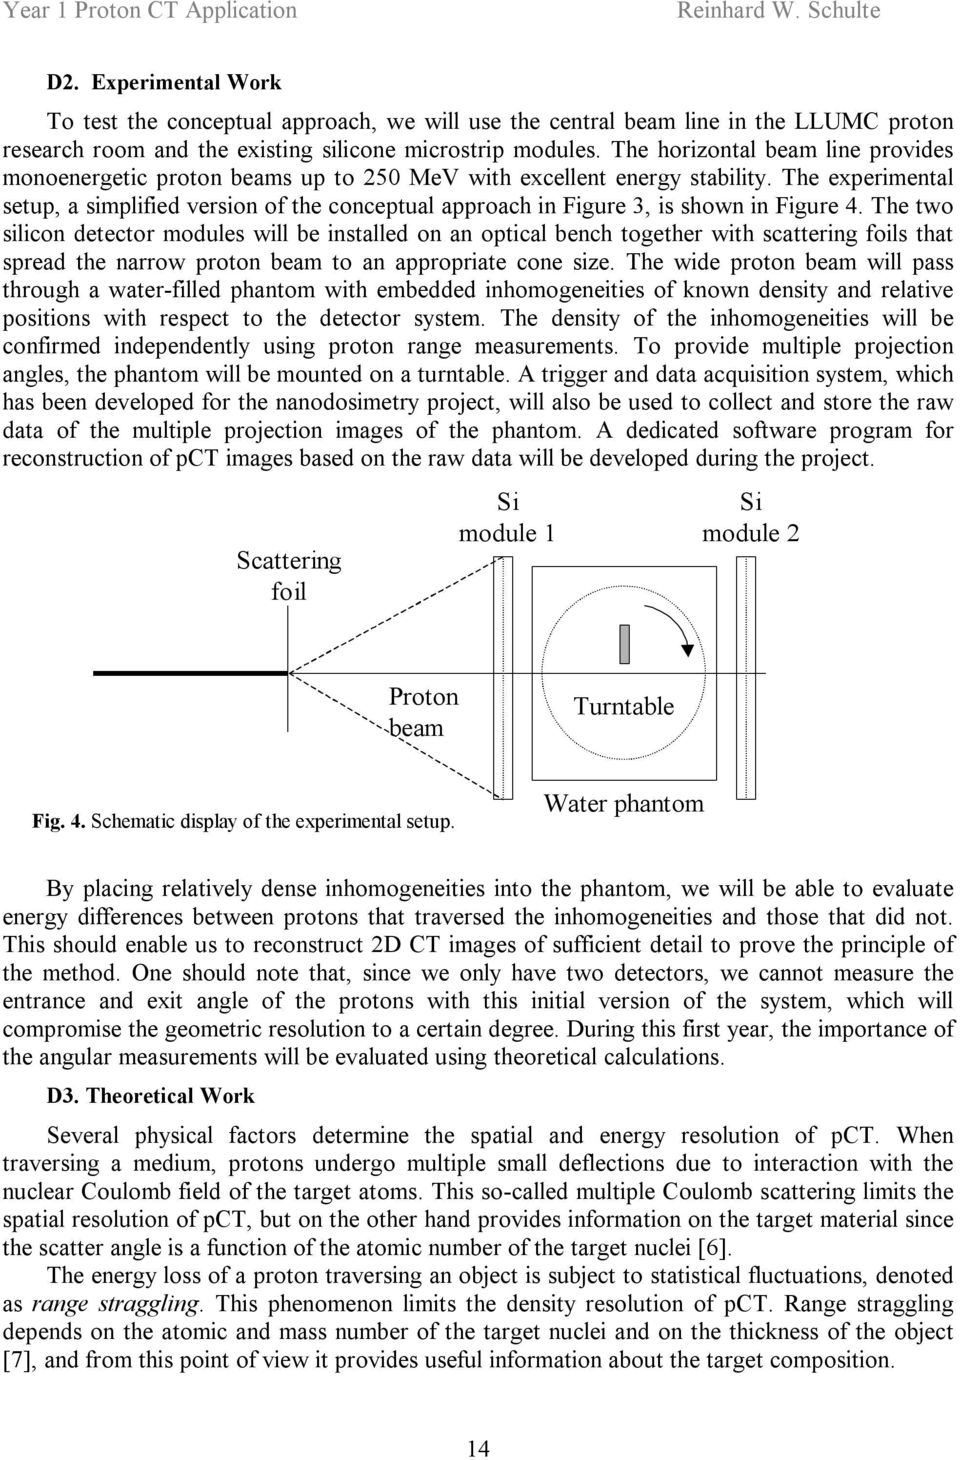 The experimental setup, a simplified version of the conceptual approach in Figure 3, is shown in Figure 4.